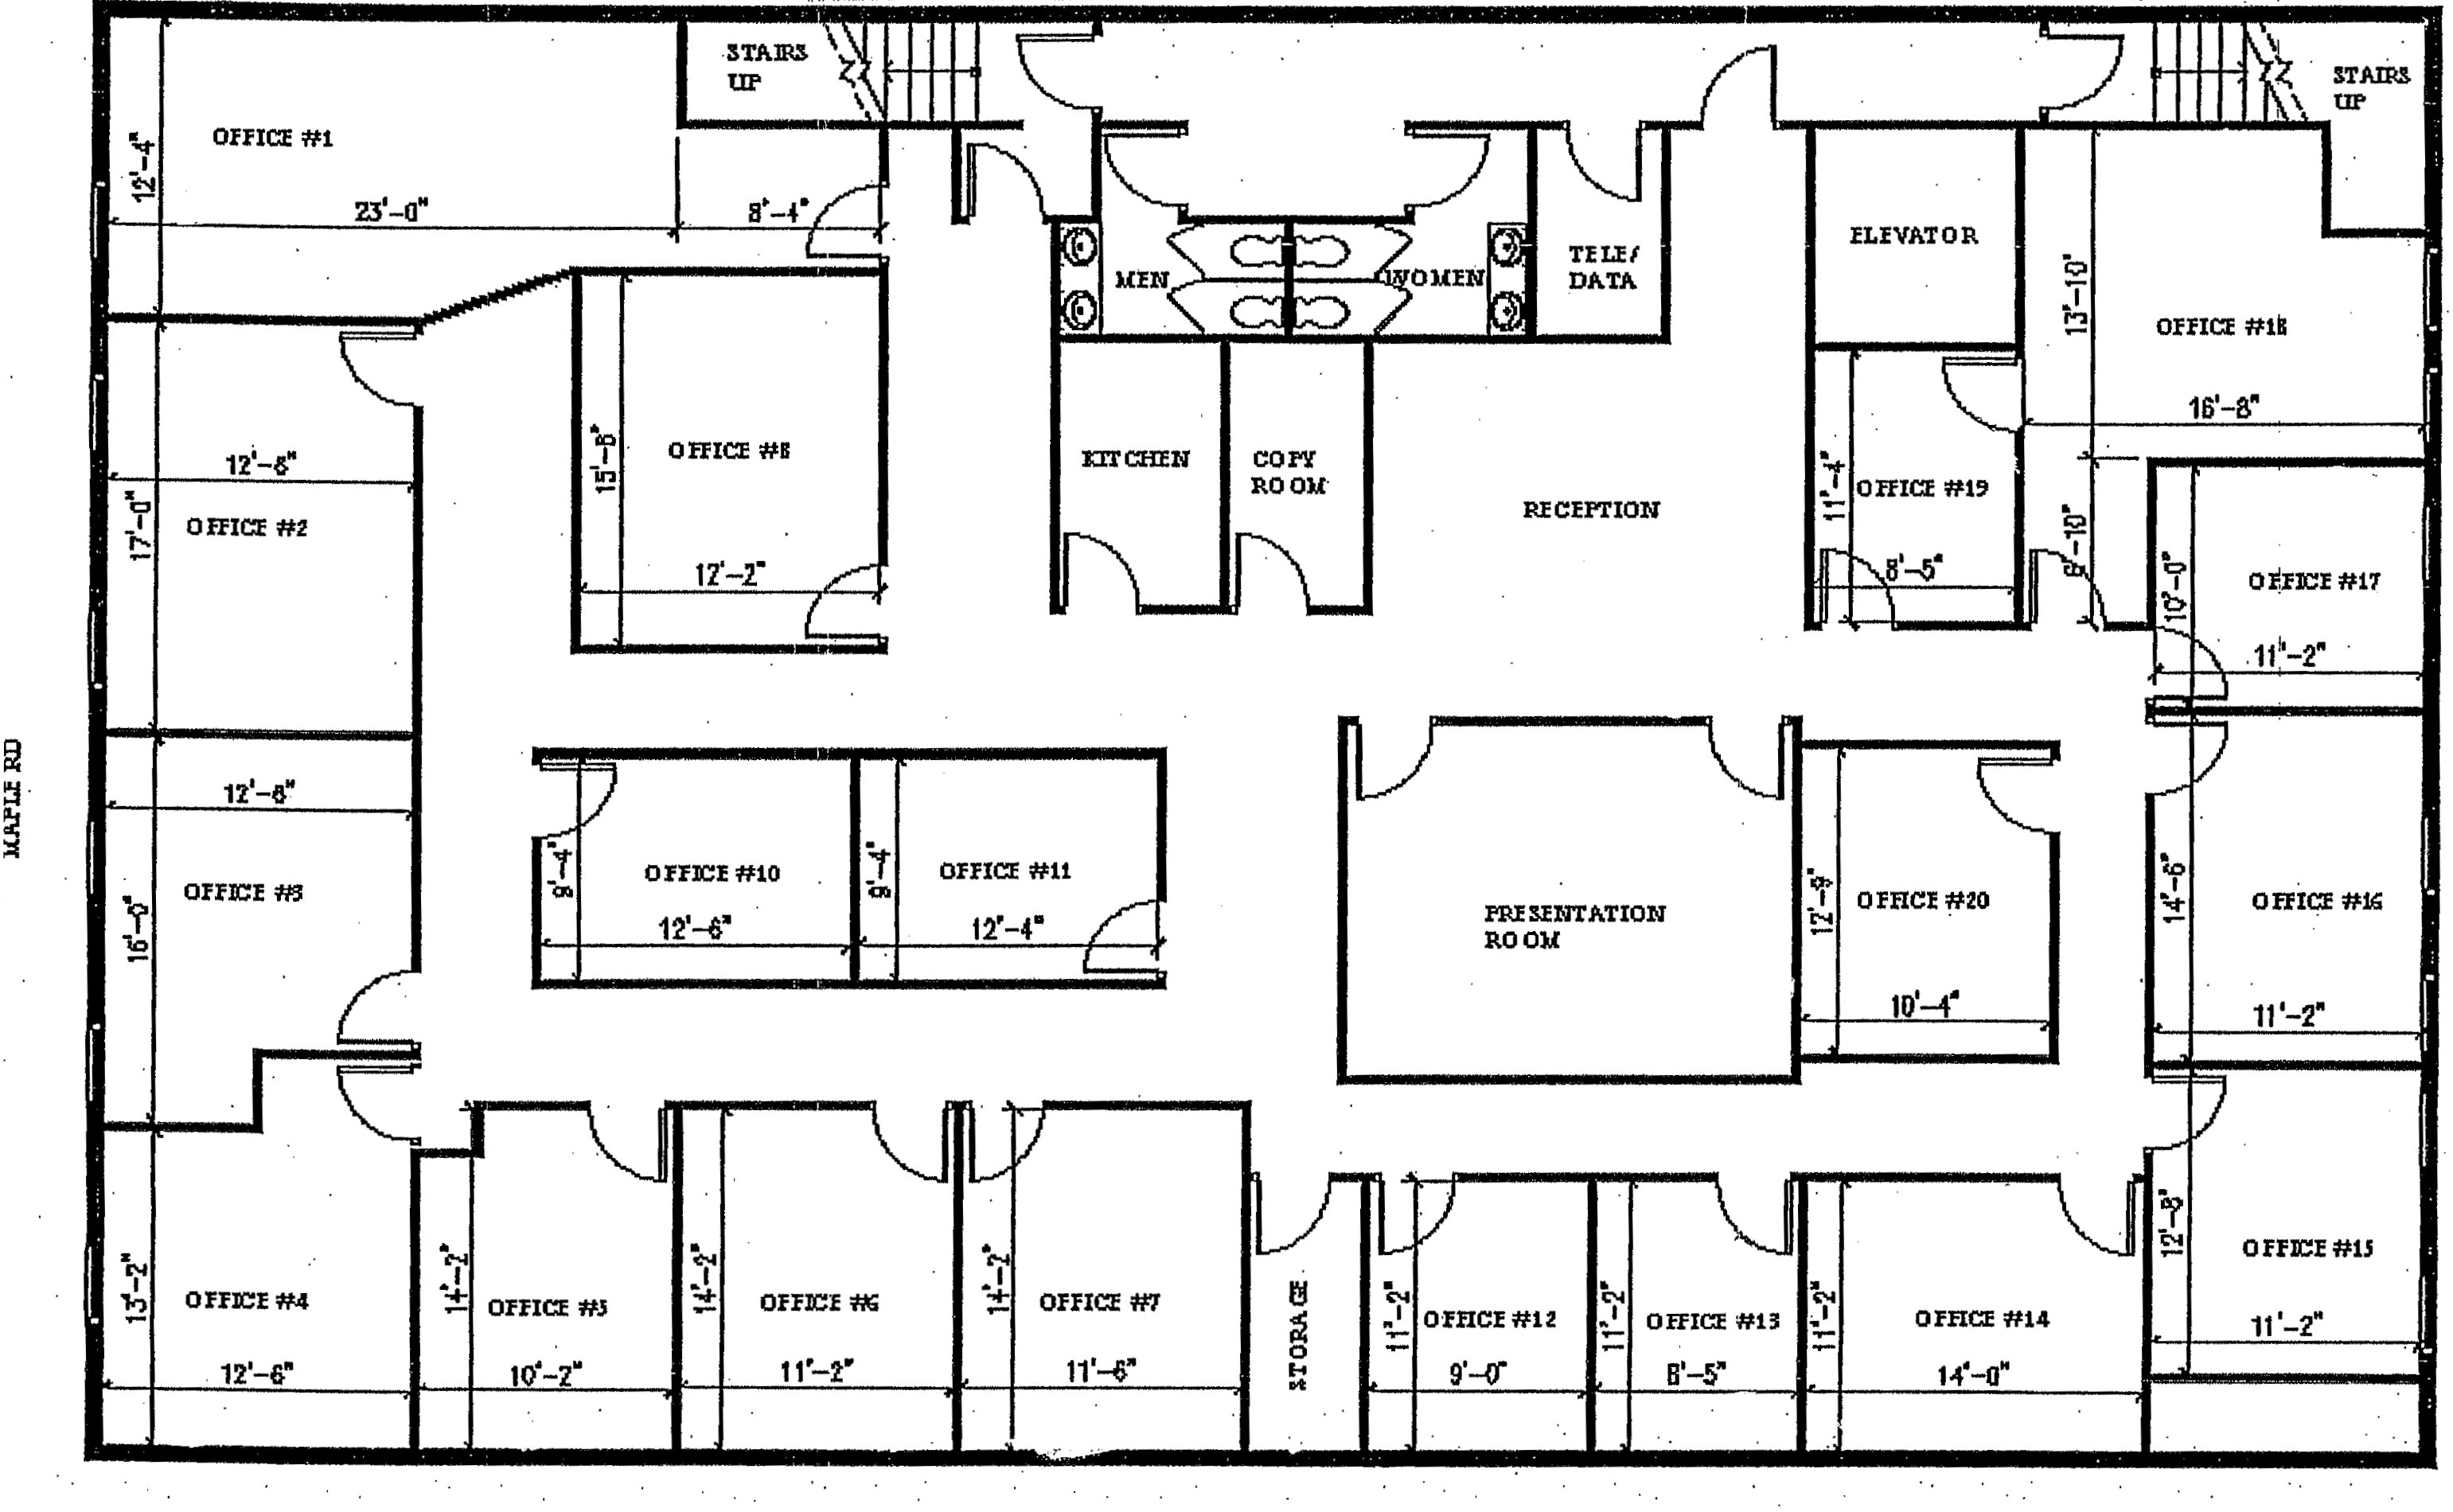 How To Enjoy Landscape Planning together with Free Photoshop Psd Bed Blocks 3 furthermore Electrical Drawing in addition How To Read House Plans Elevations as well Bedroom Floor Plan. on blueprint house sample floor plan